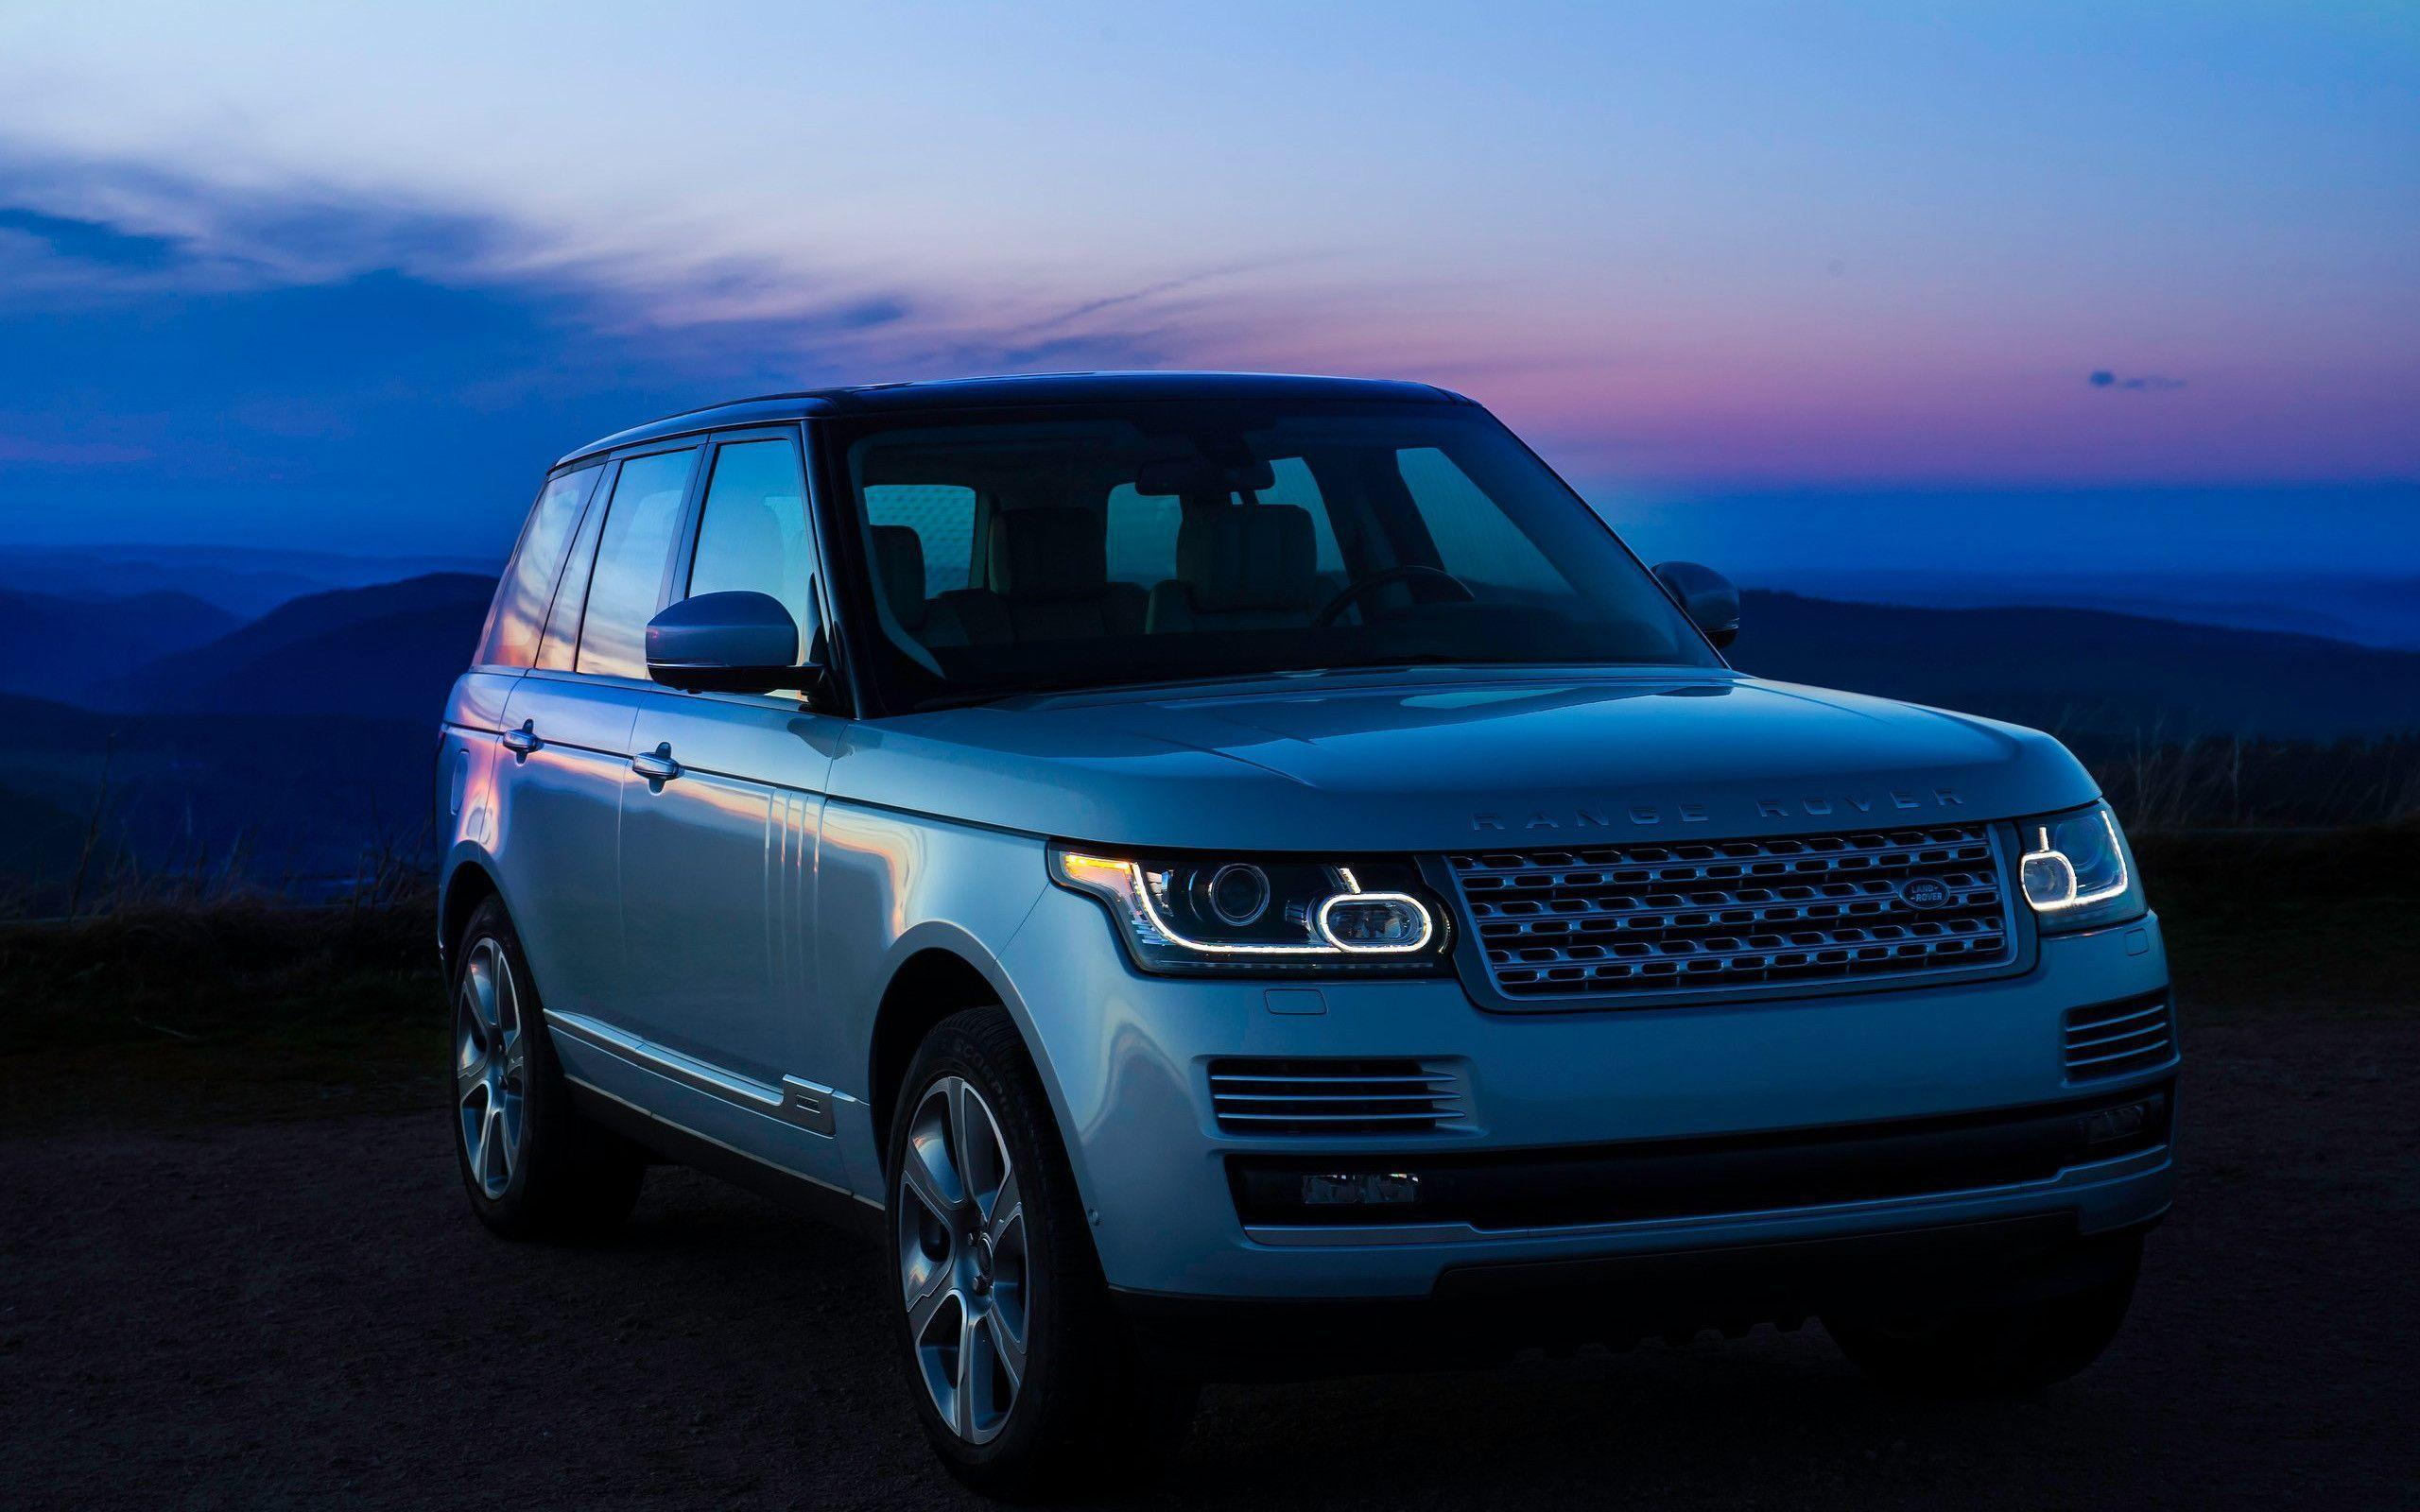 range rover sport 2015 desktop wallpapers 1600x1200 wallpaper cave. Black Bedroom Furniture Sets. Home Design Ideas